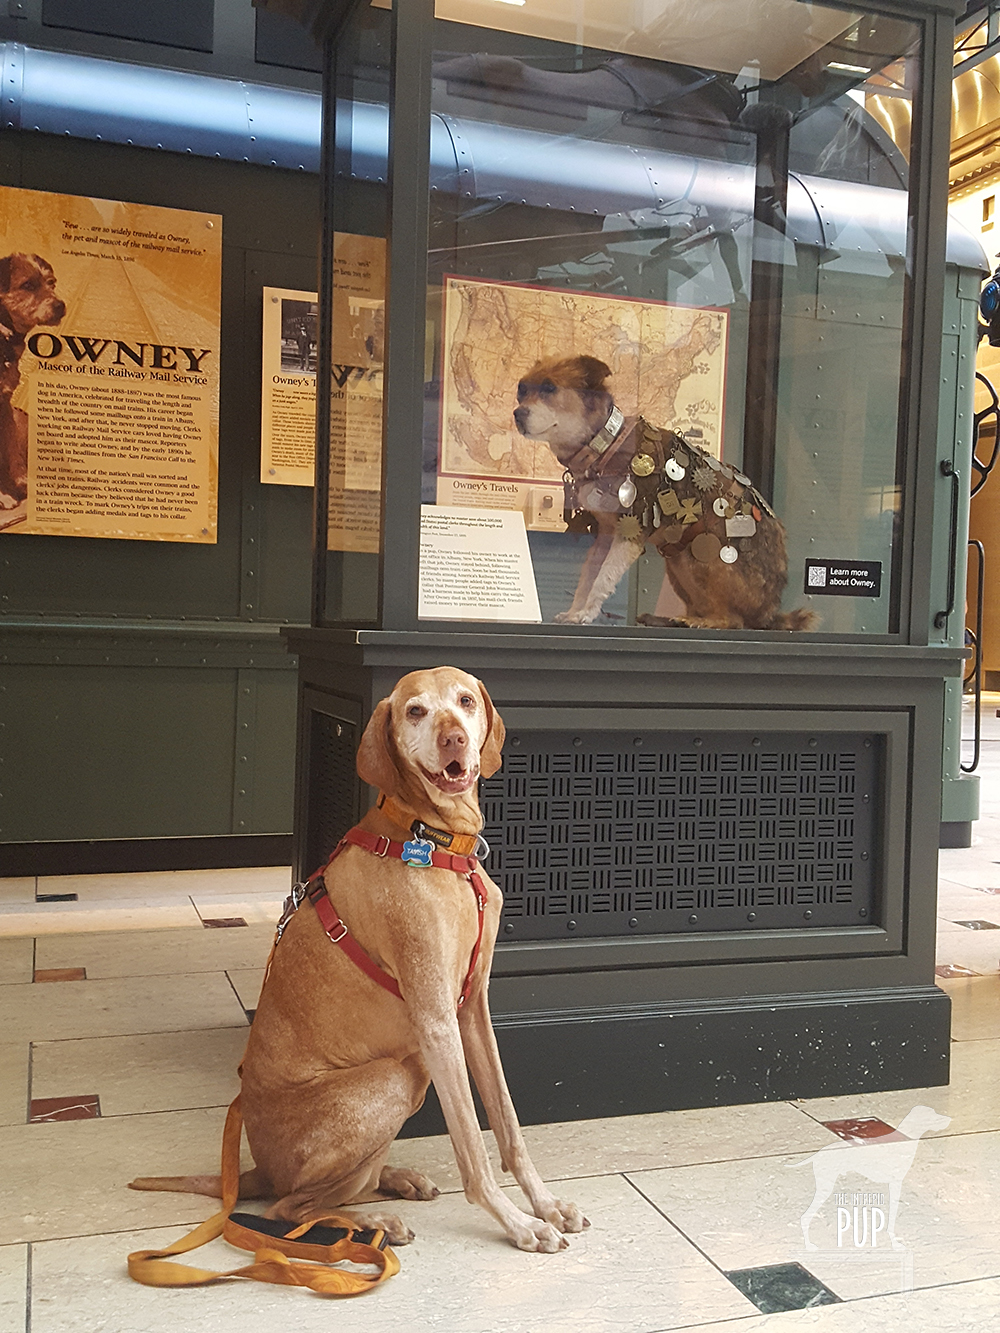 Tavish with Owney